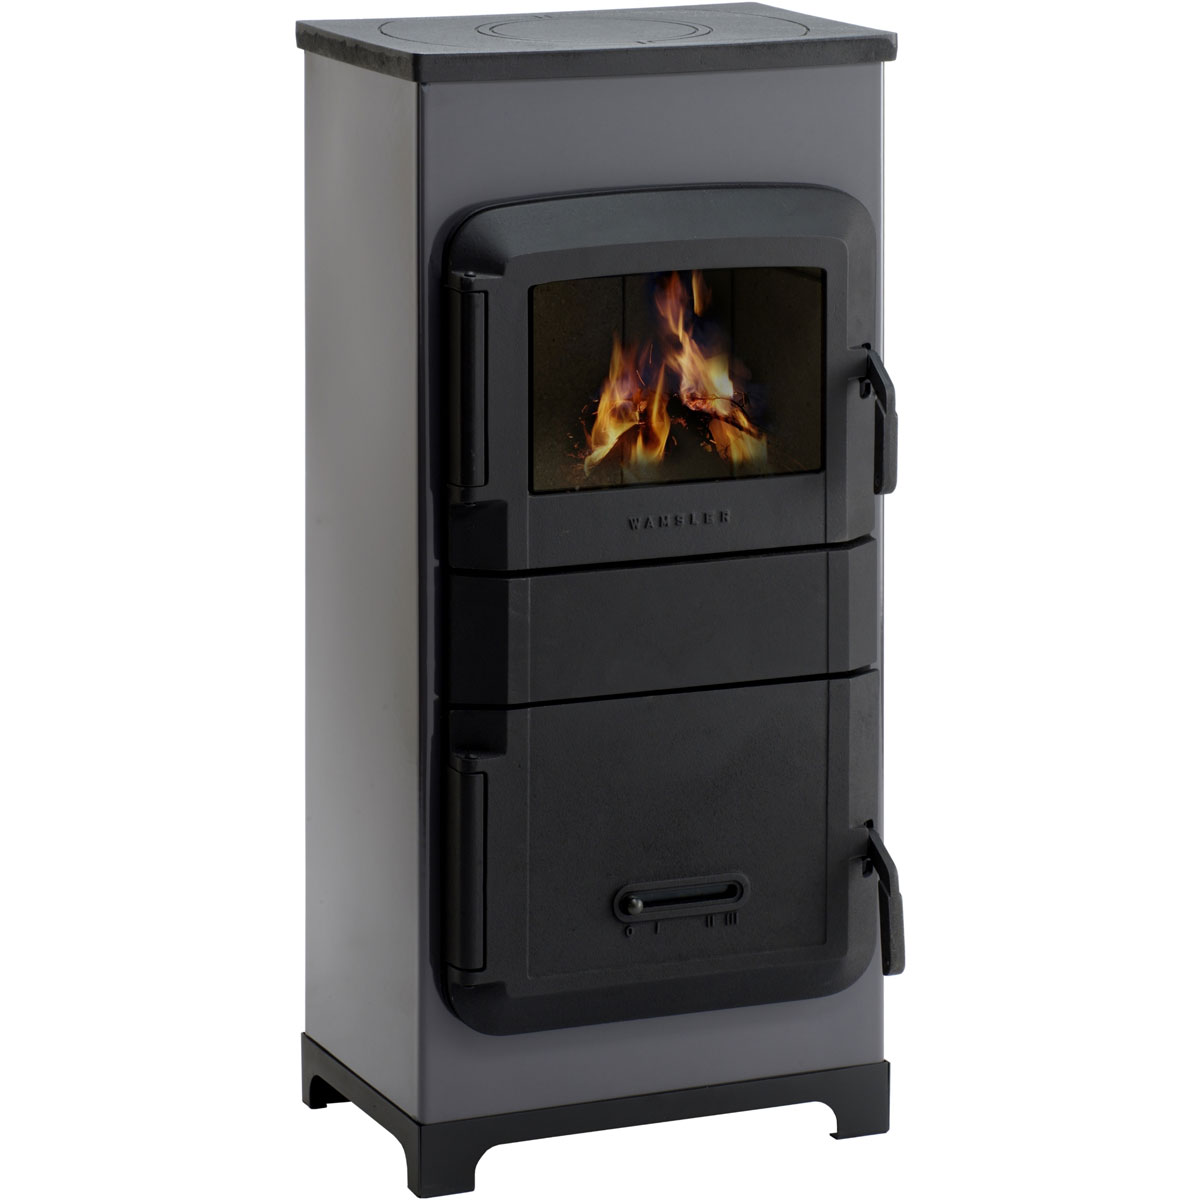 Wamsler Trendy 8 Cashmere Stove